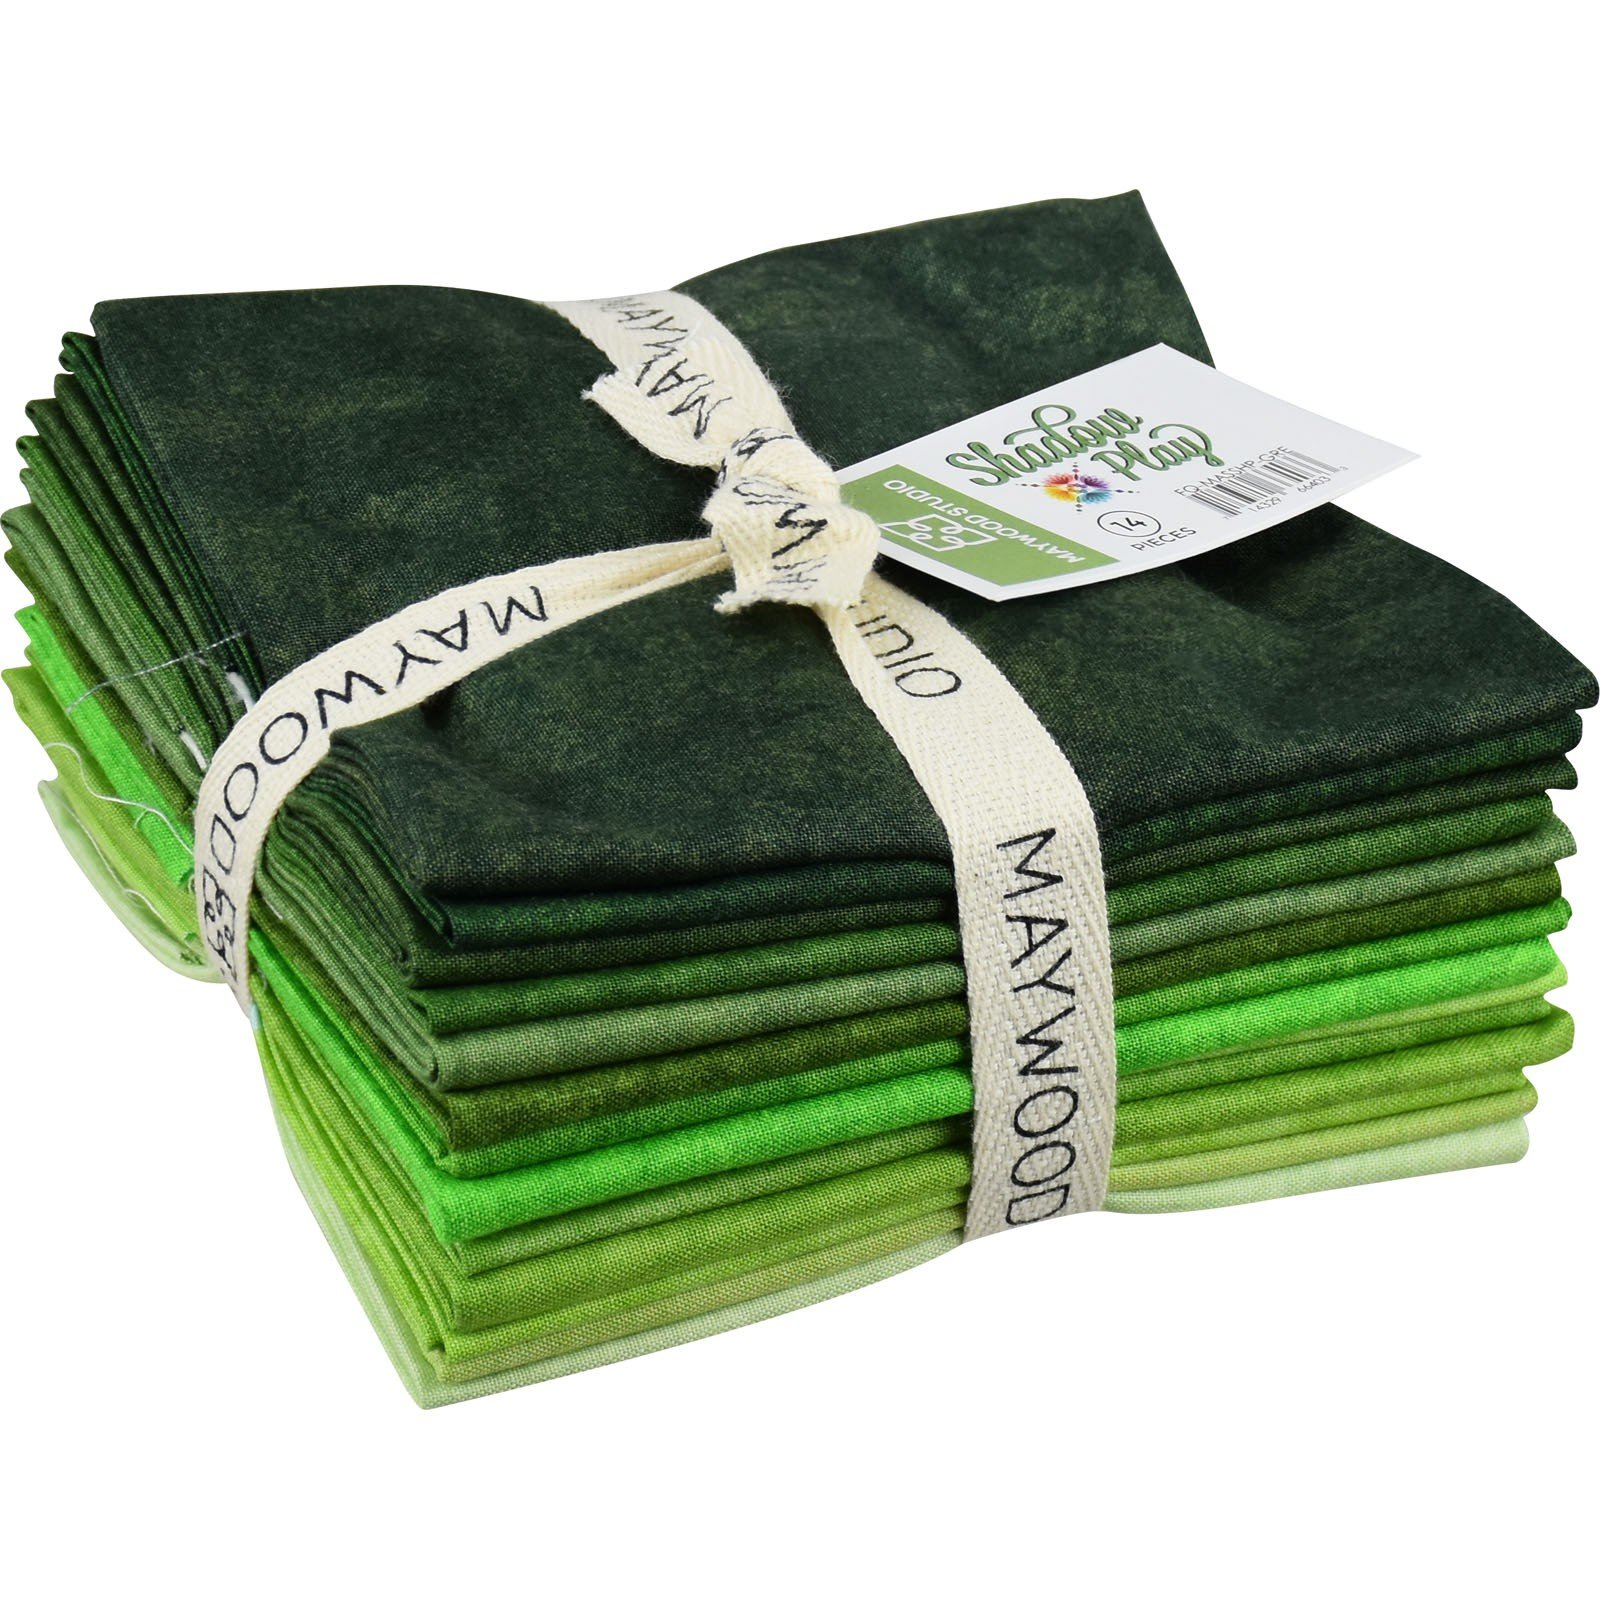 Shadow Play Fat Quarter Bundle Greens (12) Pieces